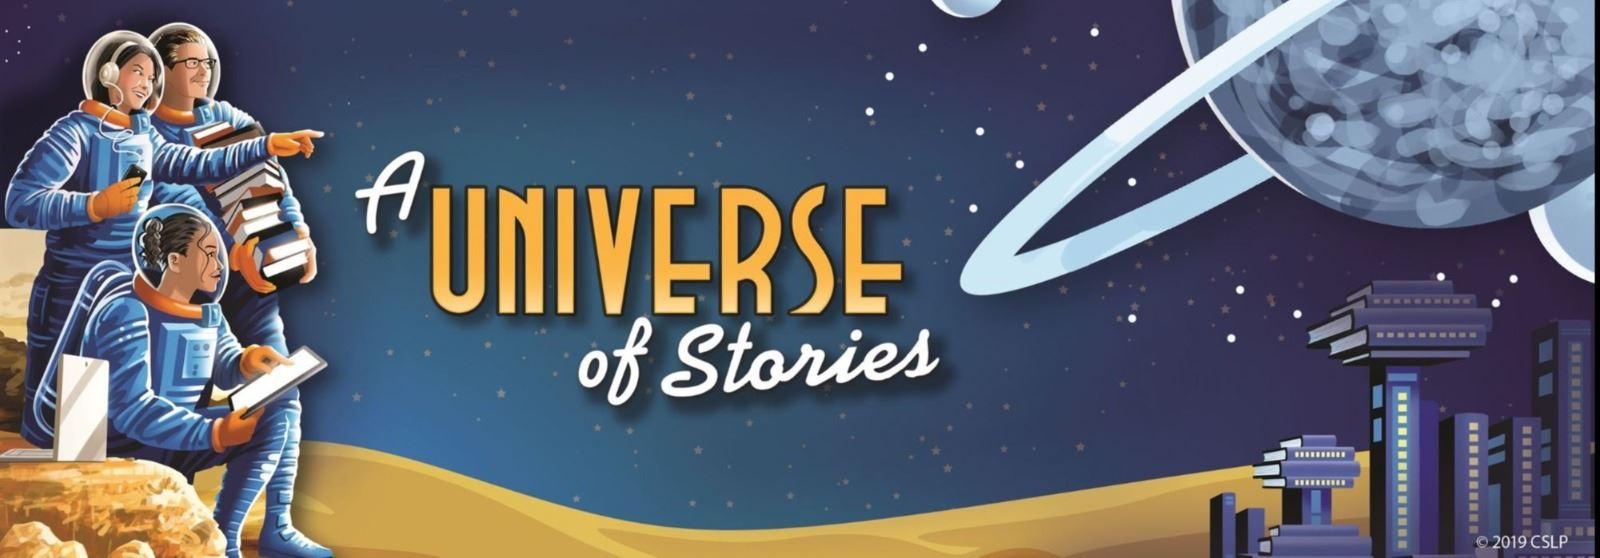 A Universe of Stories Banner 1